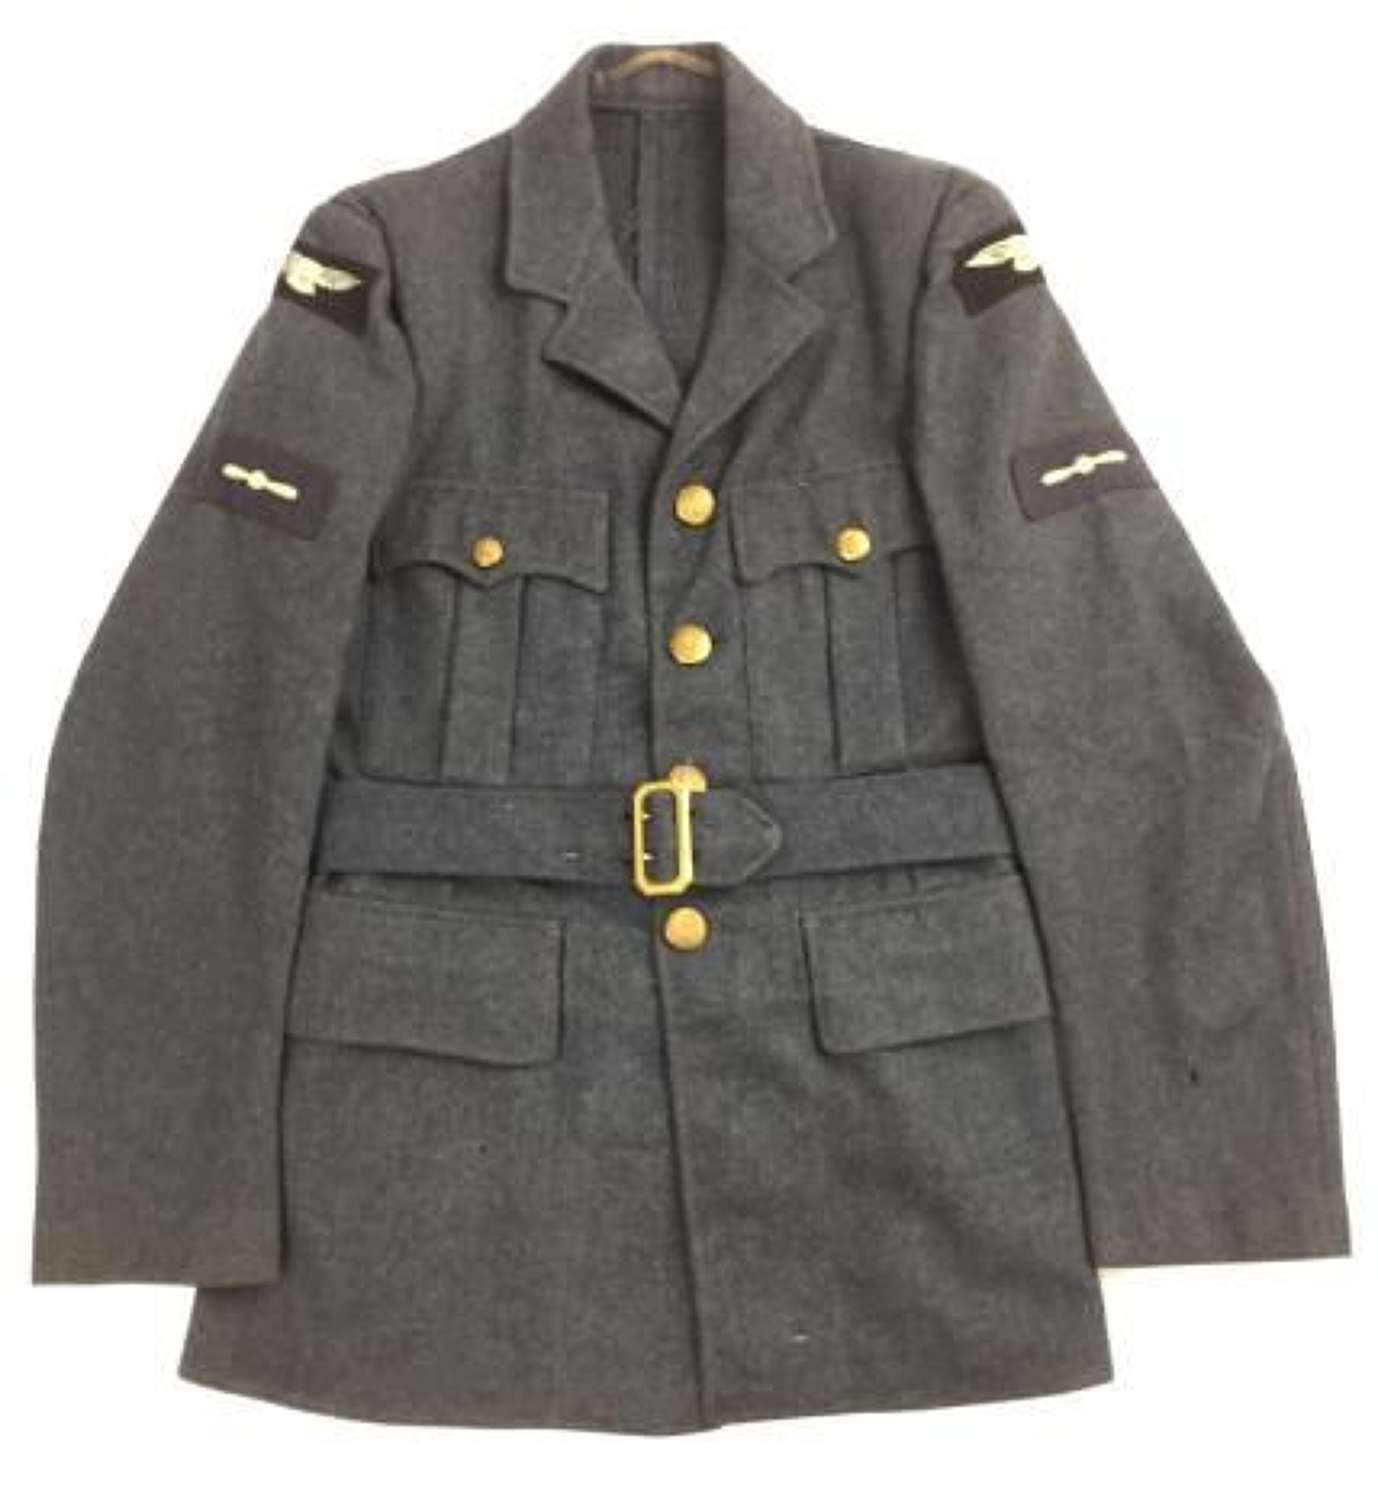 1951 Dated RAF OA Tunic + Belt - Size No.7